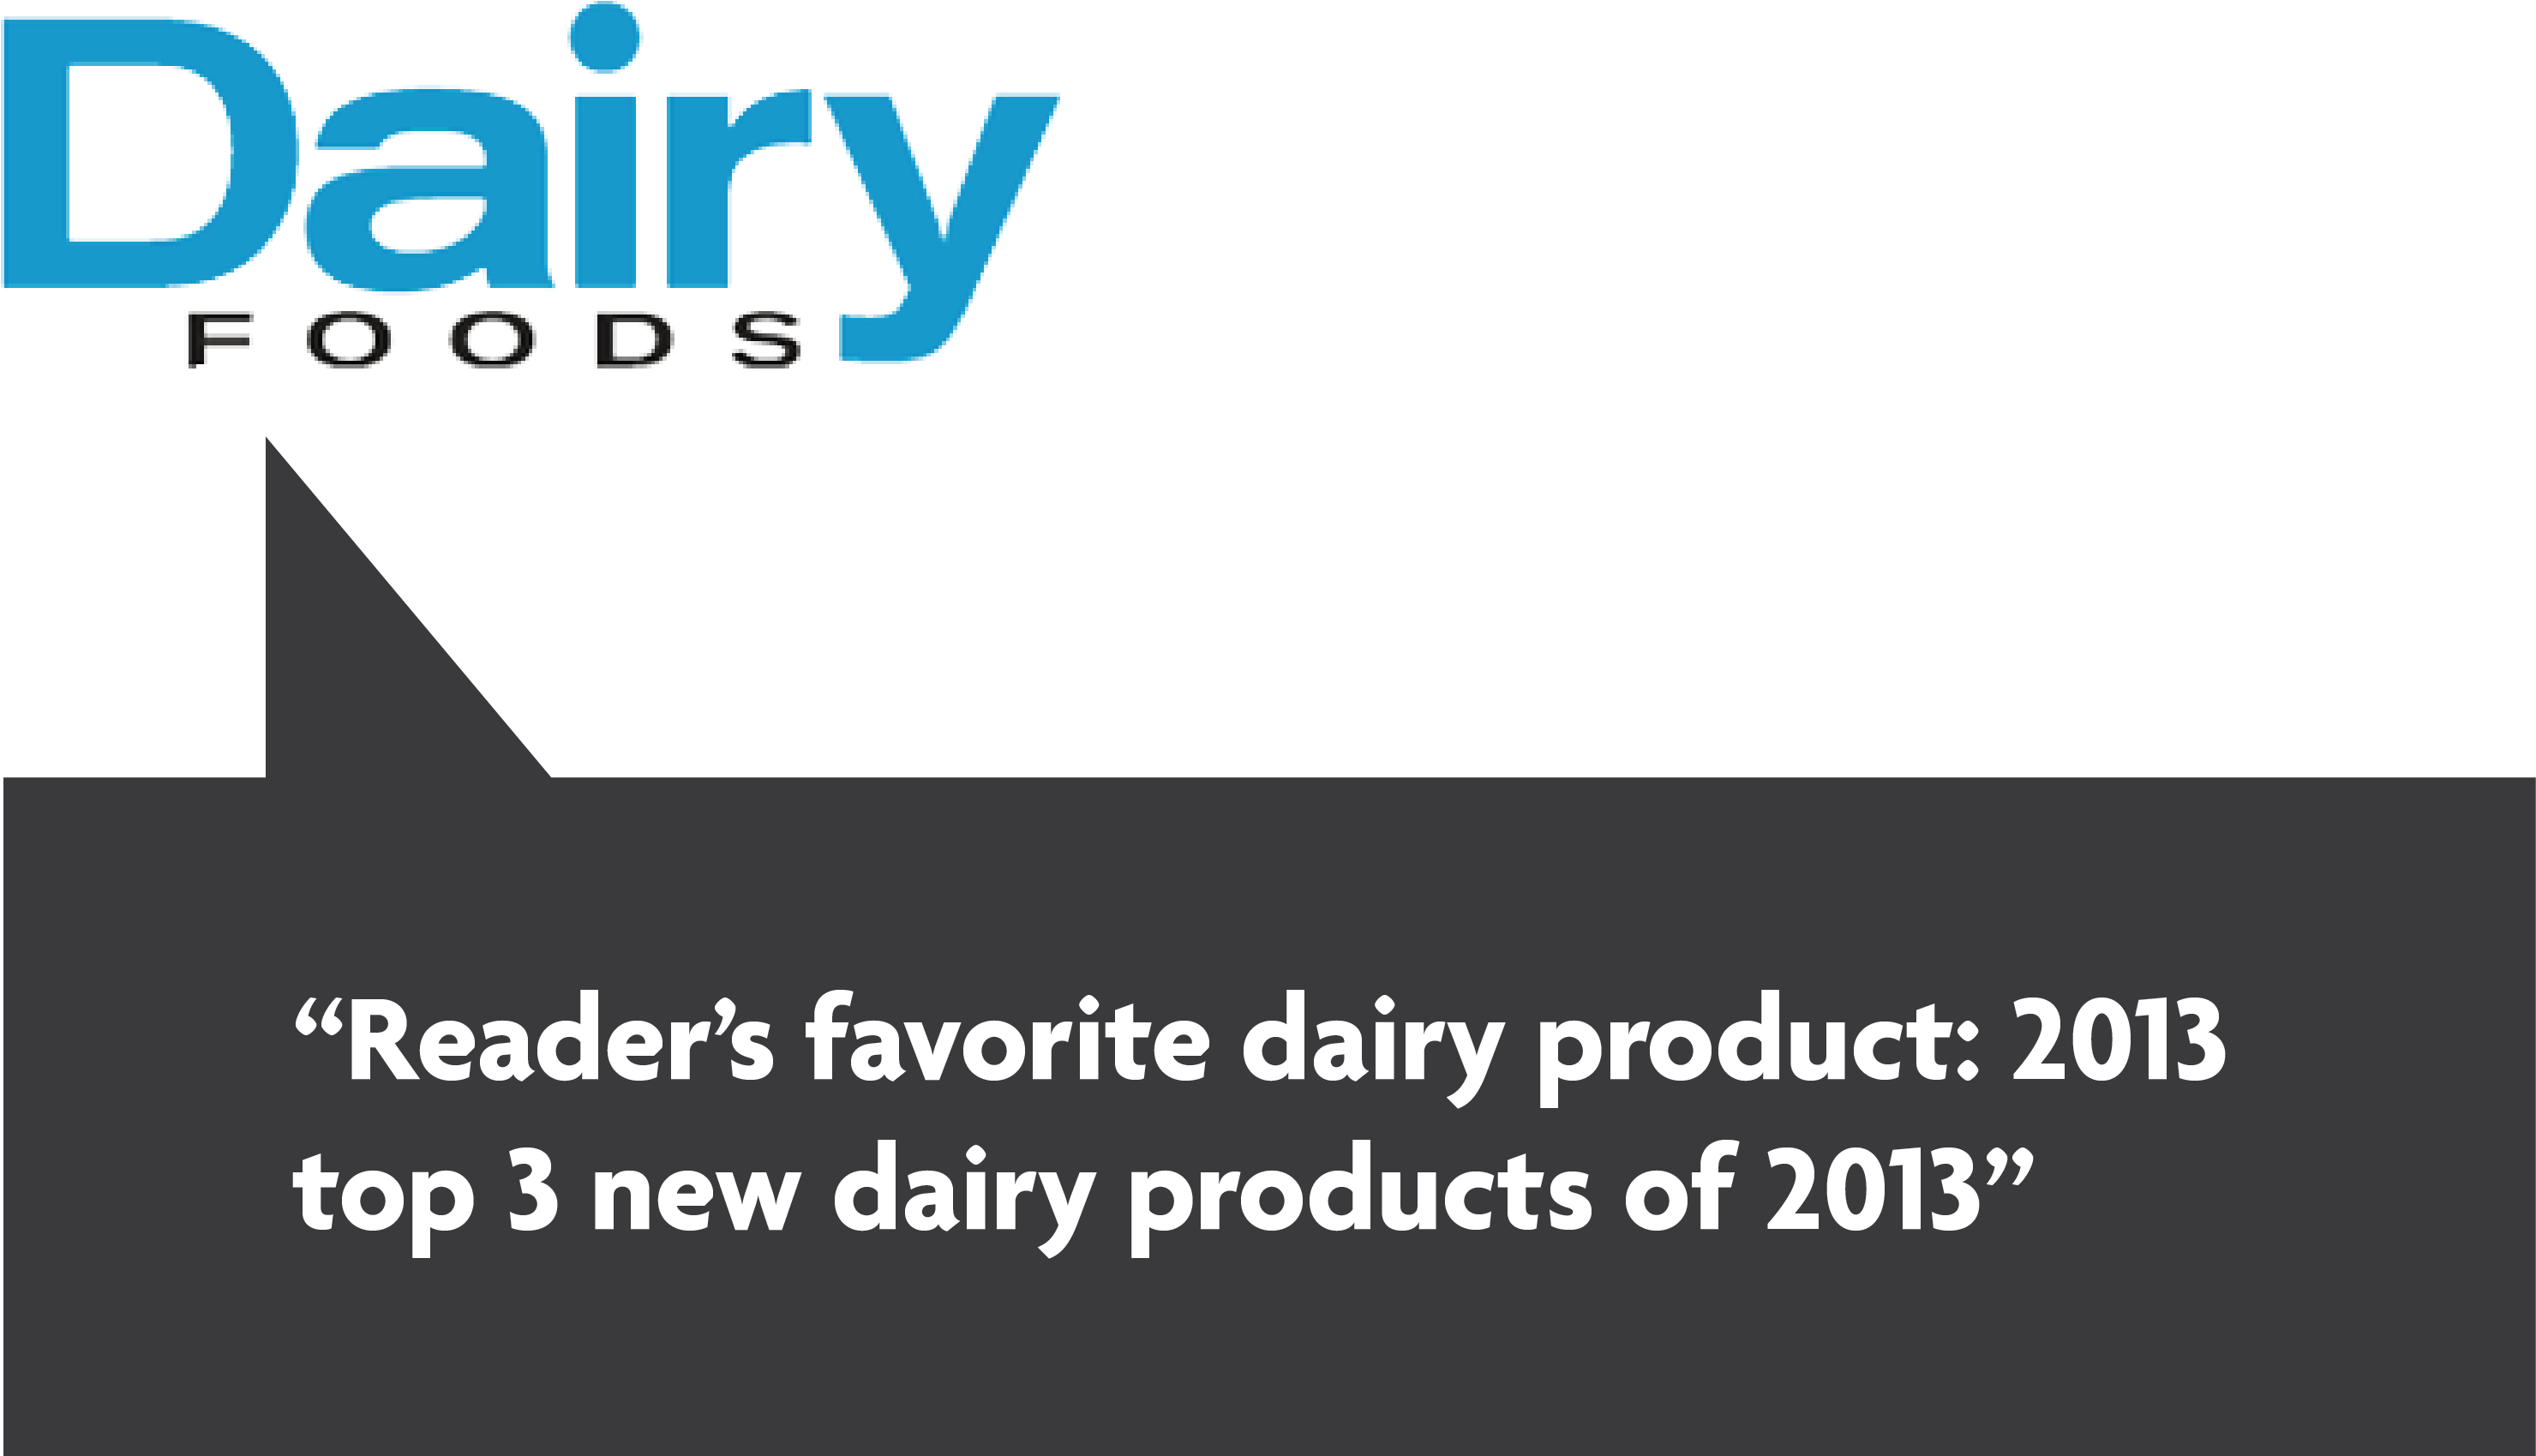 Reader's favorite dairy product: 2013 - Top 3 new new dairy products of 2013.